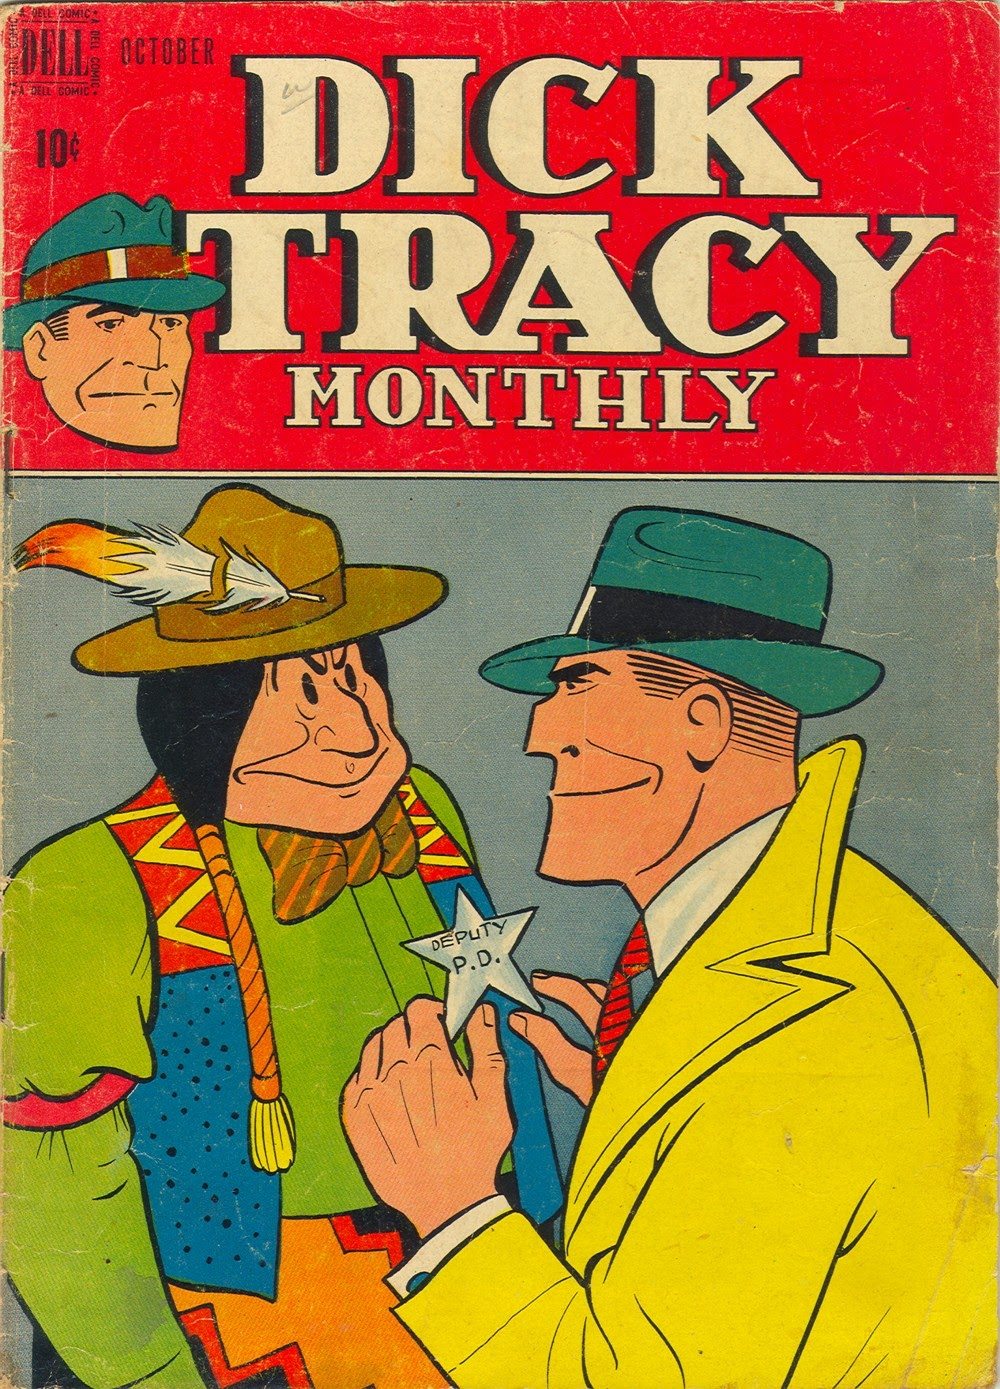 Dick Tracy Monthly 10 Page 1